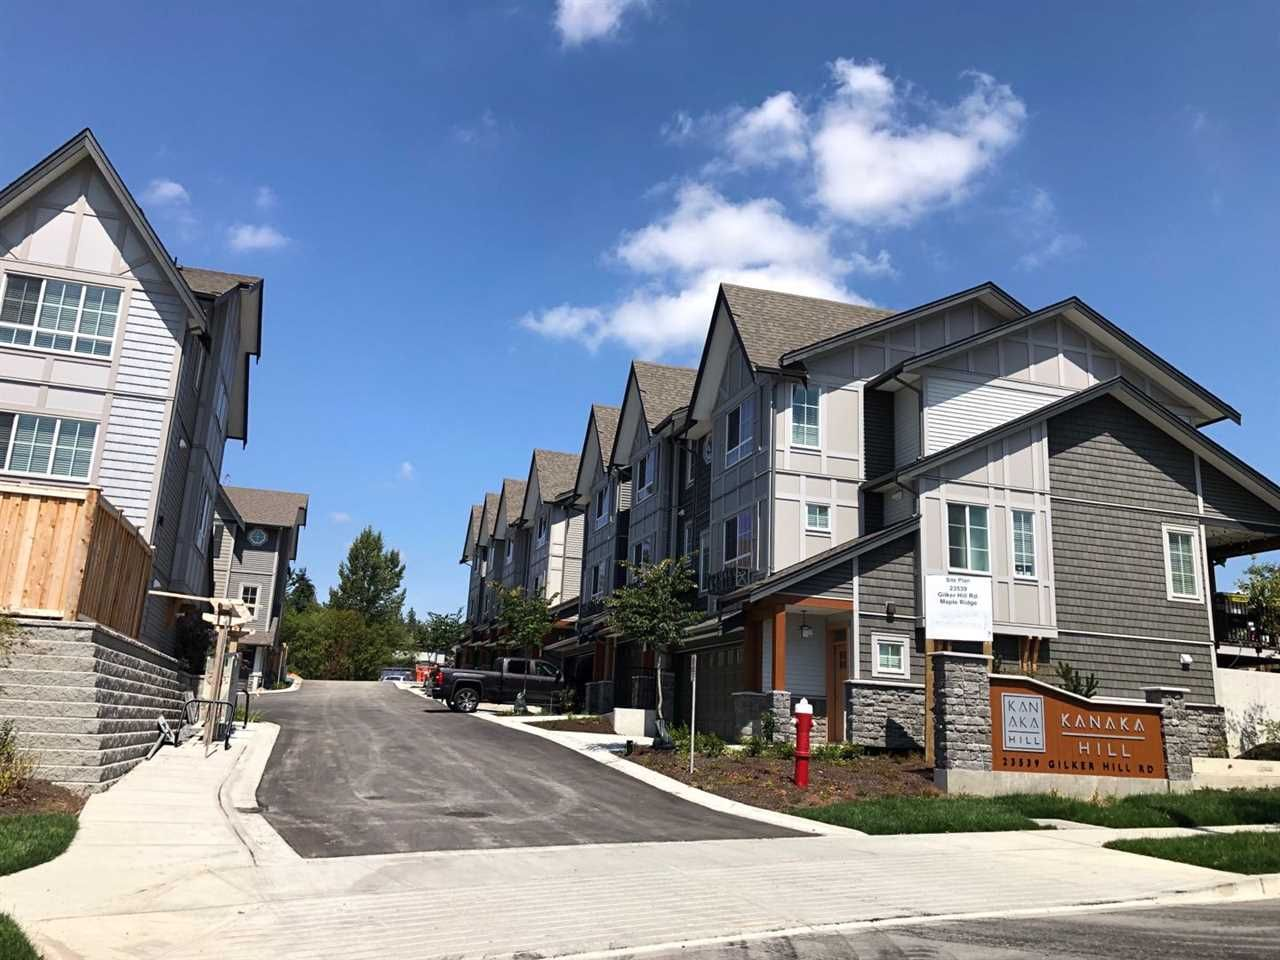 Main Photo: 13 23539 GILKER HILL Road in Maple Ridge: Cottonwood MR Townhouse for sale : MLS®# R2398962